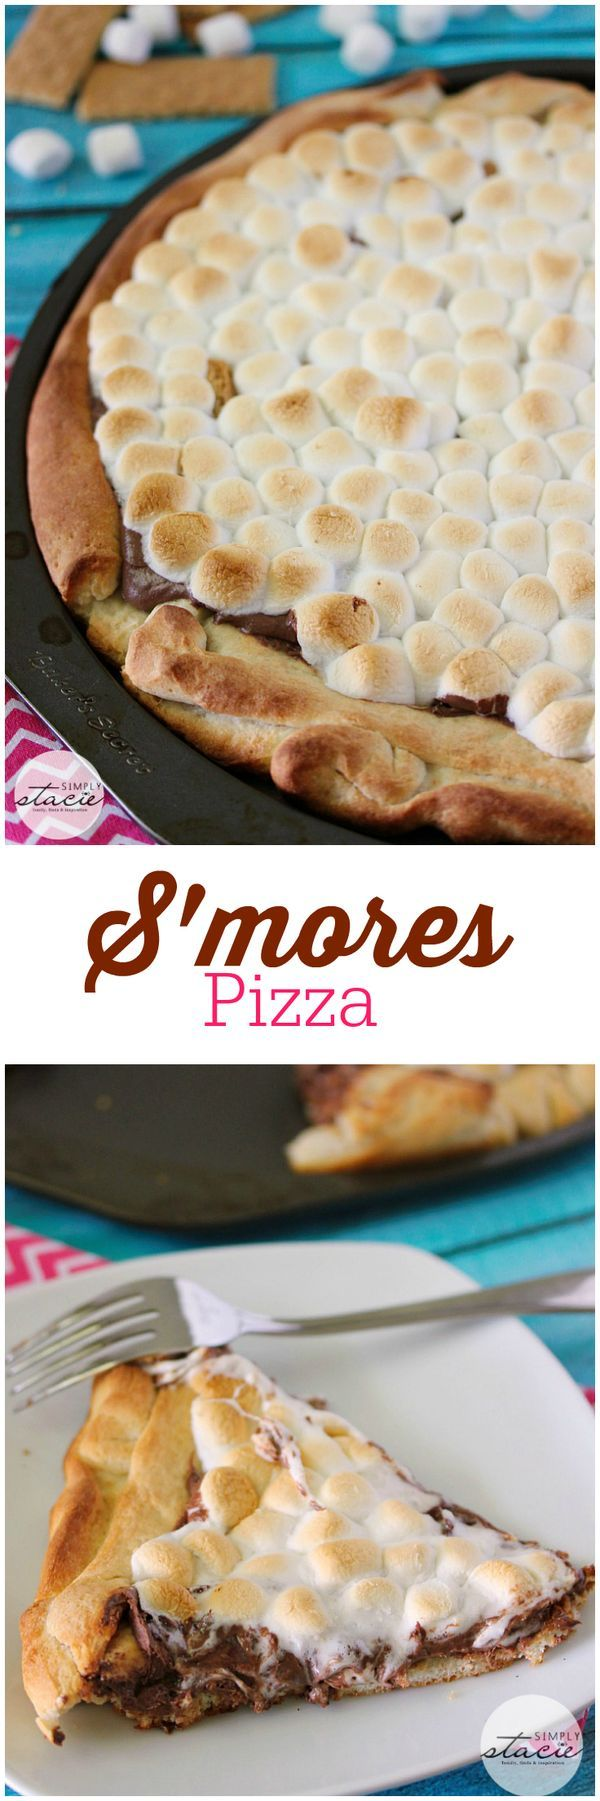 S'mores Pizza - sticky, sweet pizza heaven! Covered in rich chocolate and then topped with melted marshmallows for an out-of-this-world dessert!